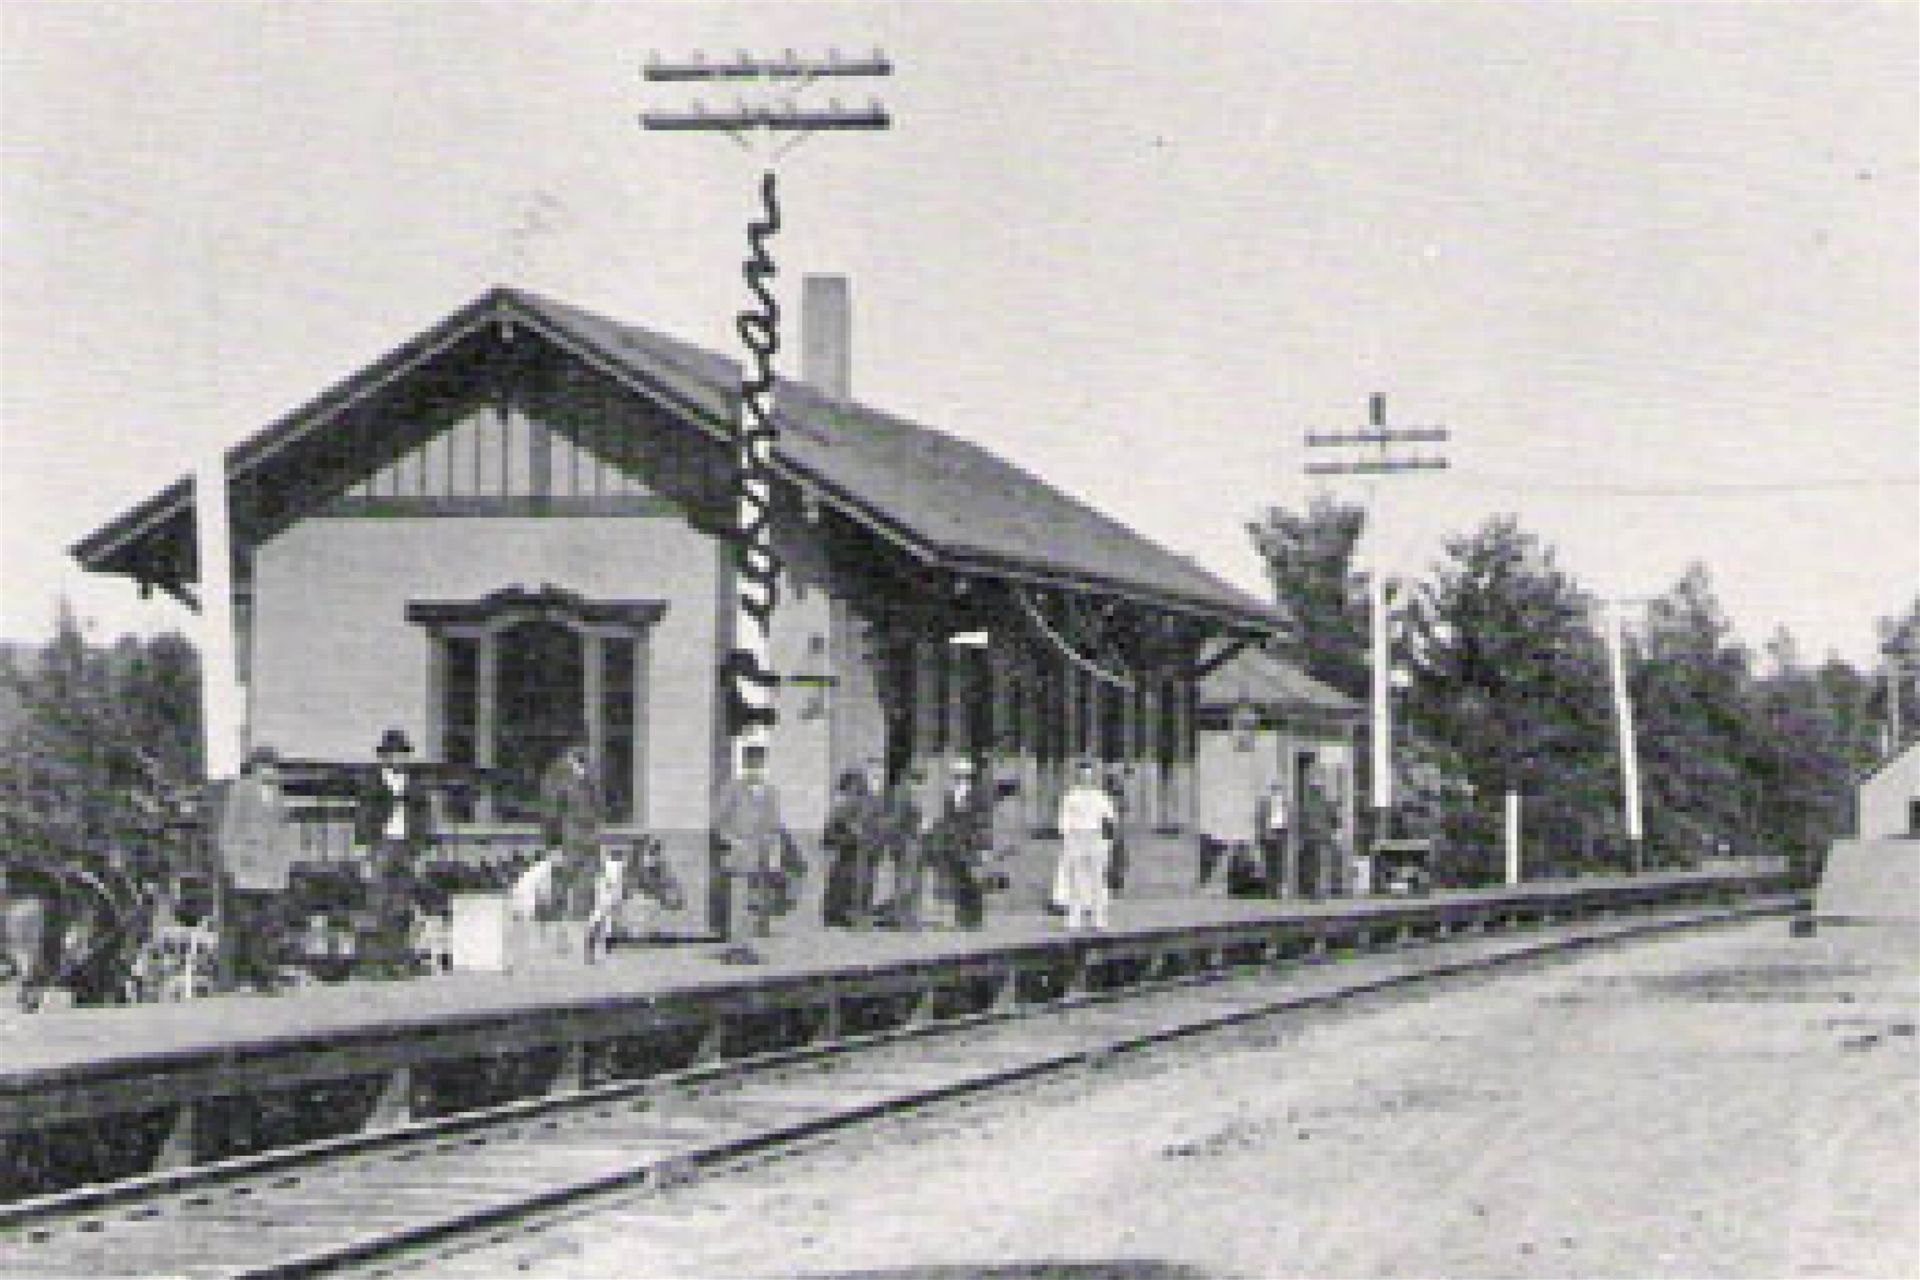 In 1849, the Androscoggin and Kennebec Railroad runs its first train to the Readfield Depot, only miles from the school.